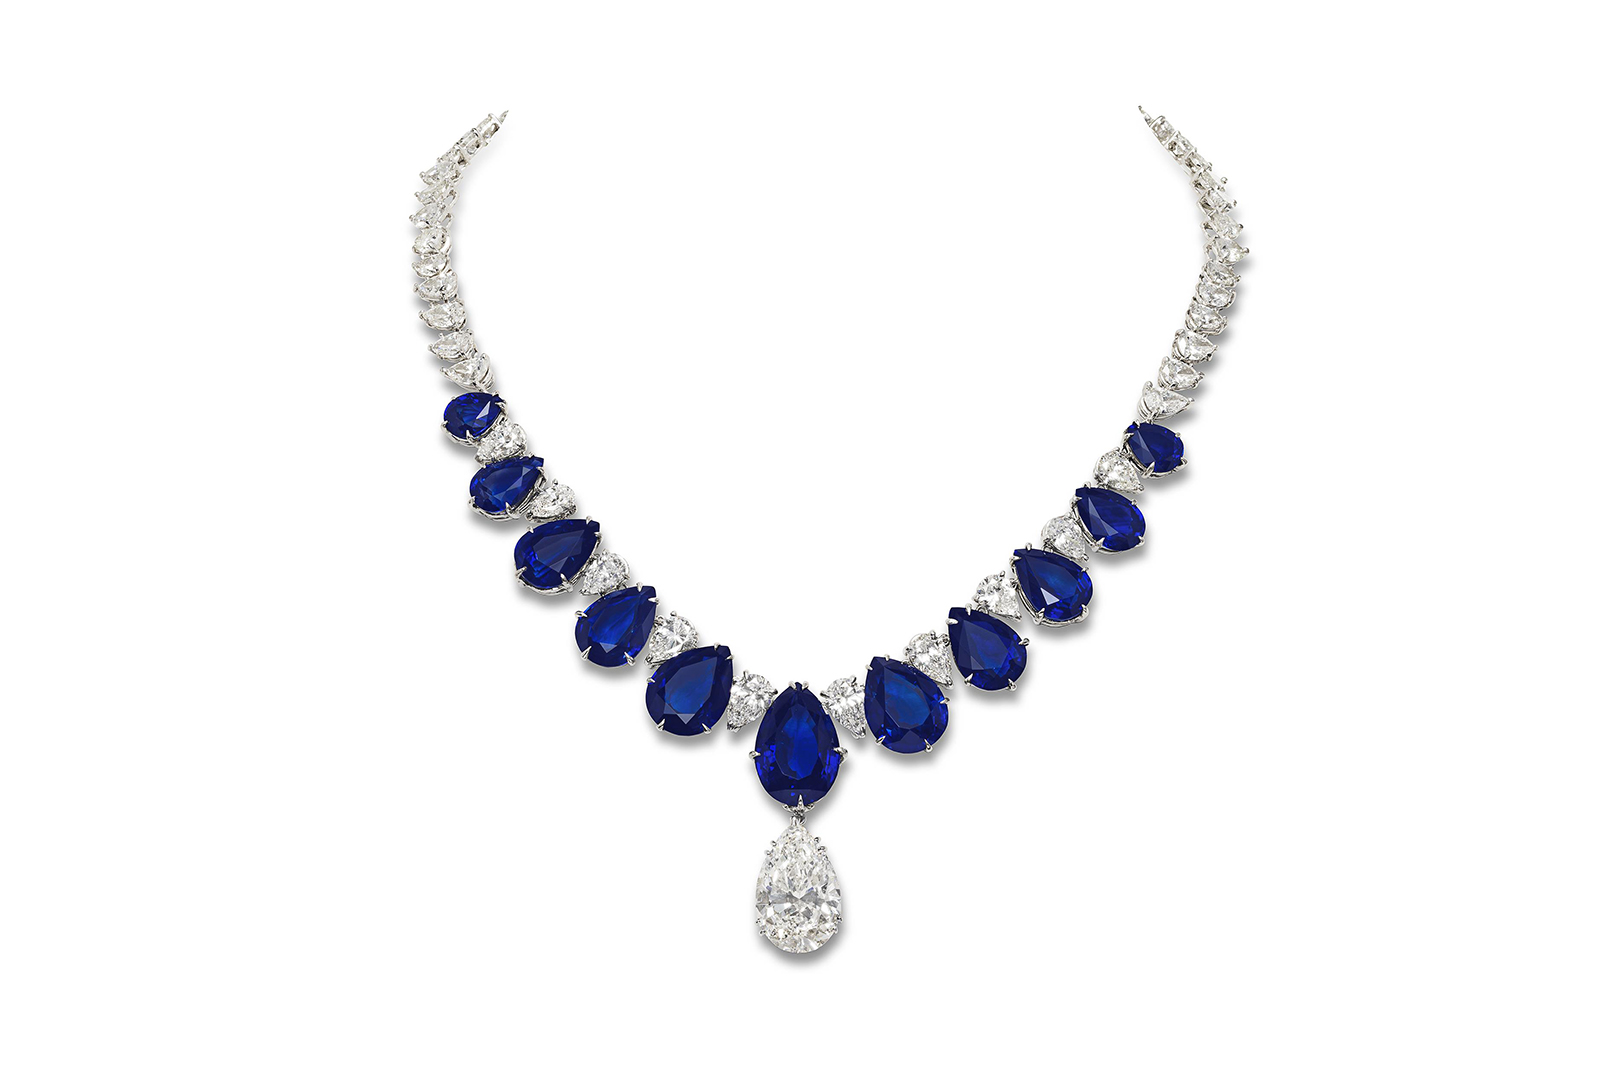 A remarkable feat of contemporary design: Jahan's natural sapphire and diamond necklace